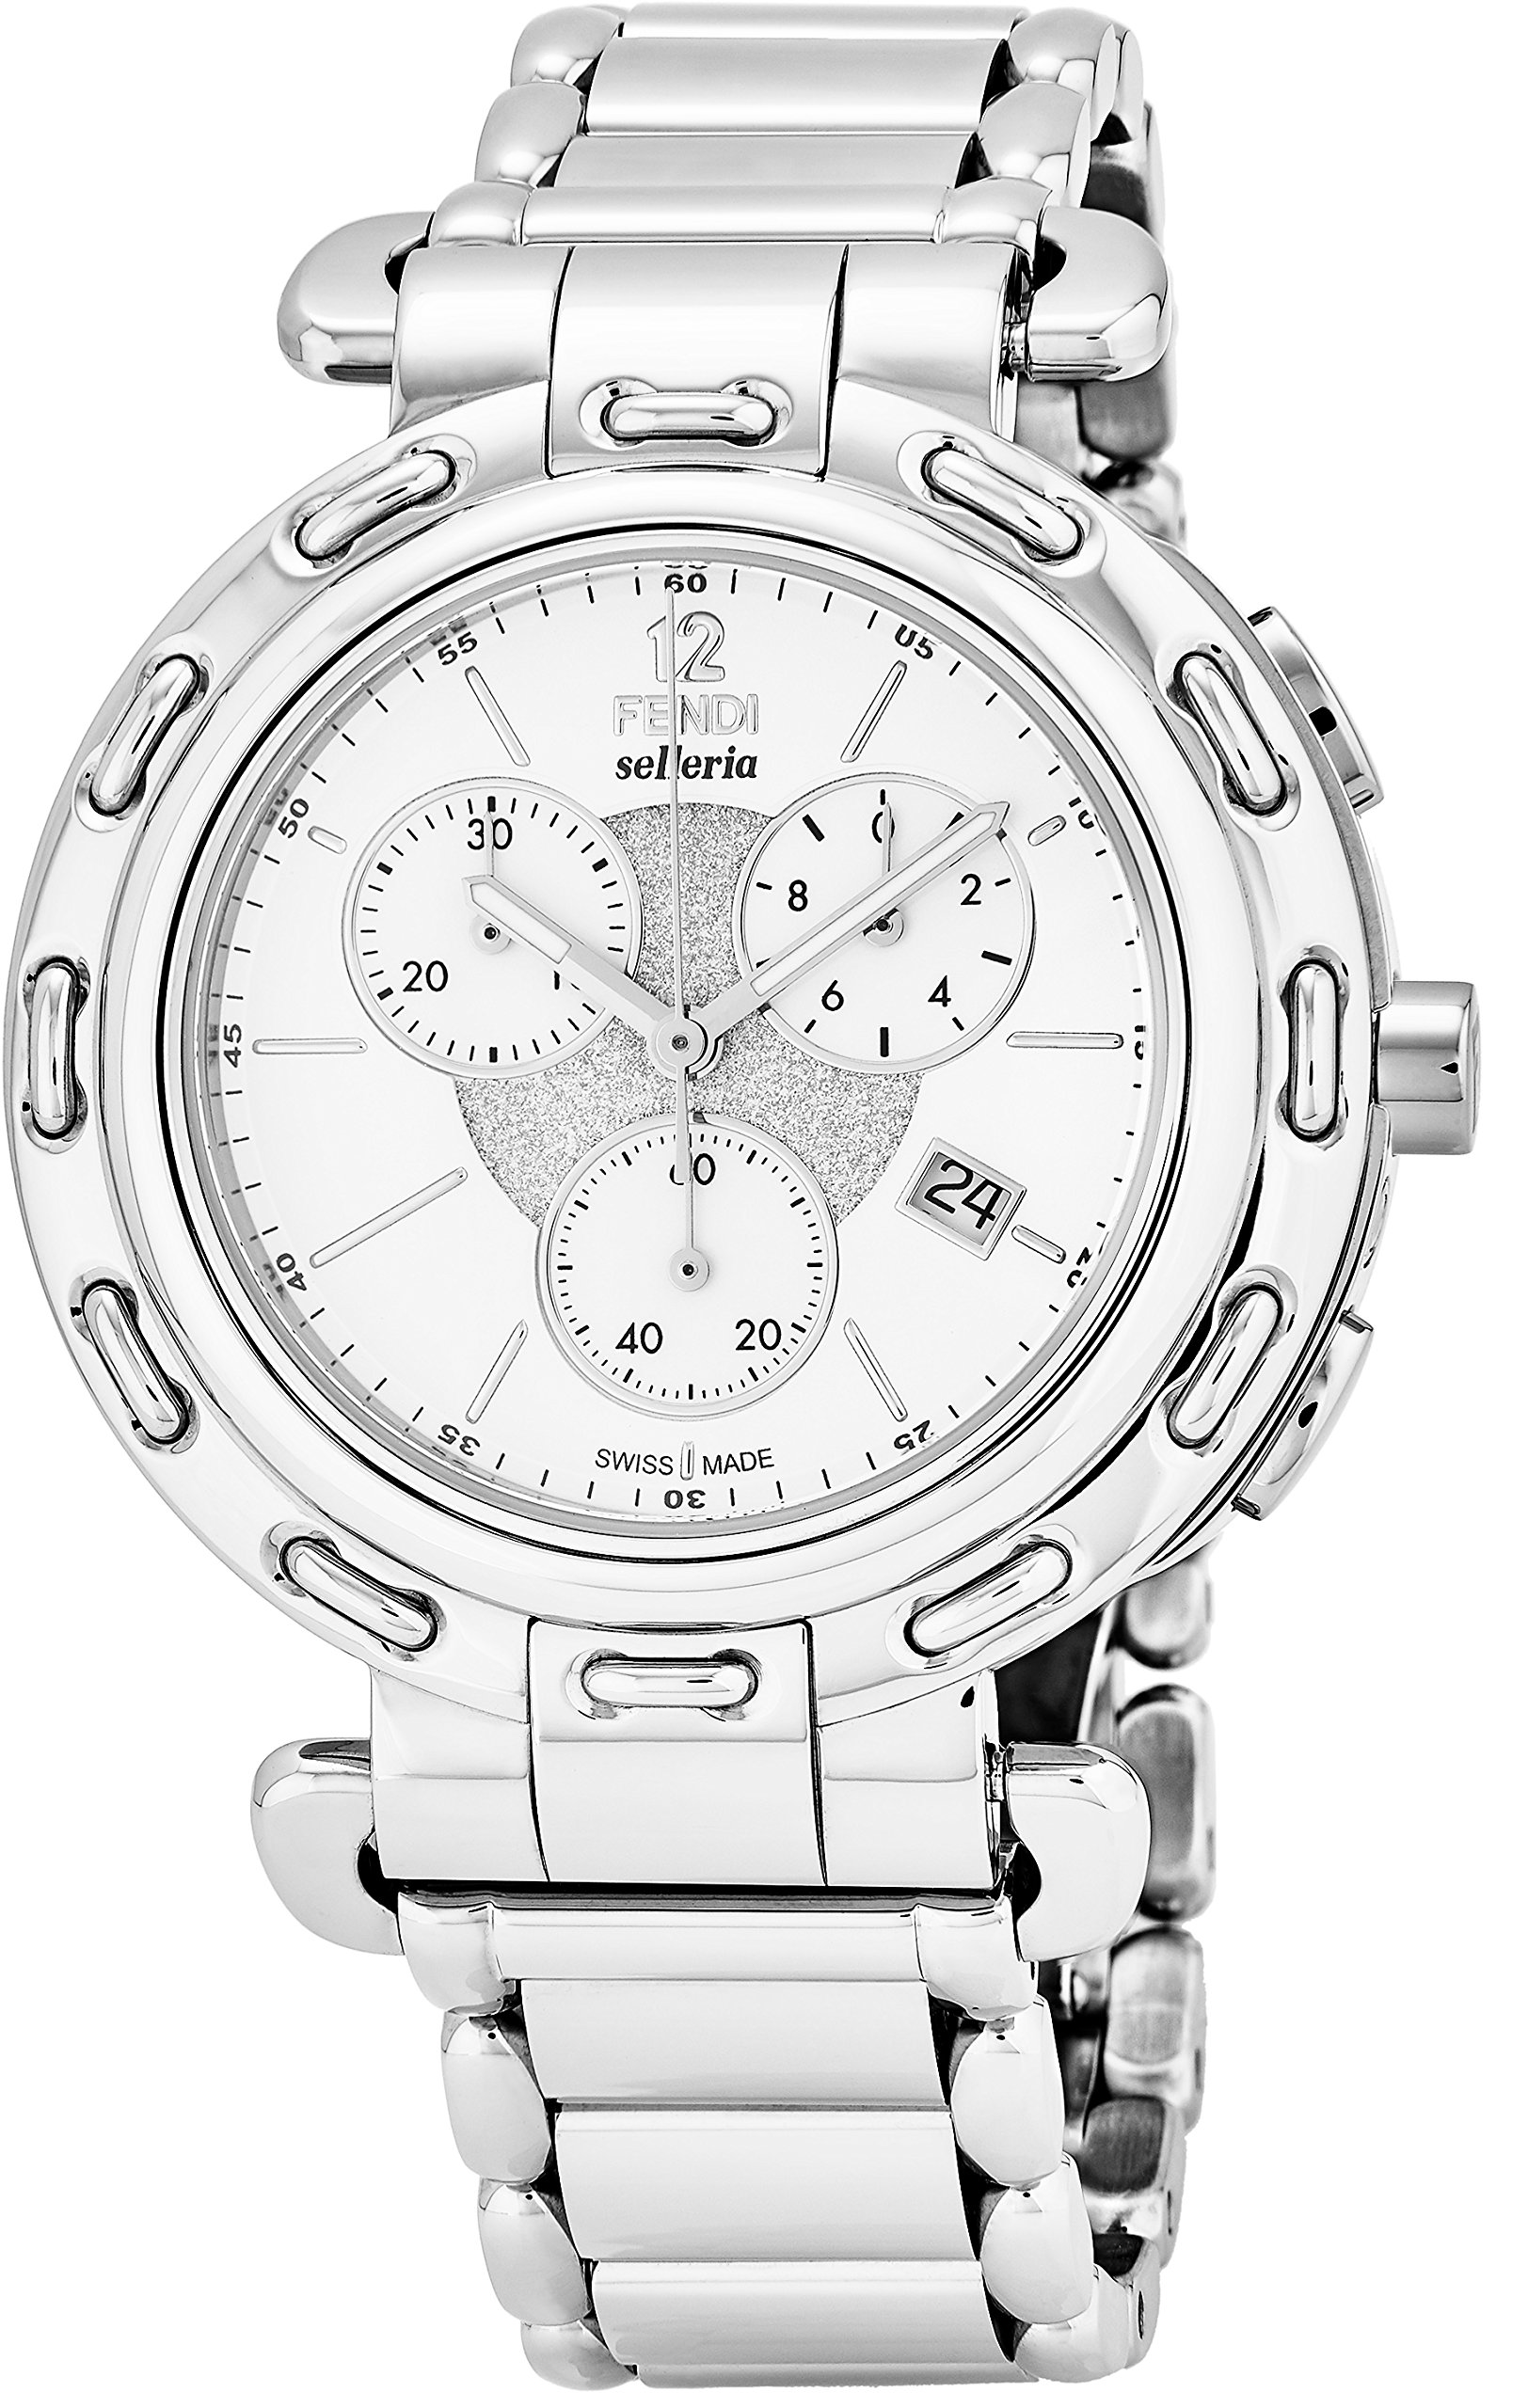 Fendi Selleria Mens Stainless Steel Swiss Chronograph Watch with Selleria Horse Logo on Back - White Face Analog Quartz Fashion Dress Watch For Men with Interchangeable Band F89034H-BR8653